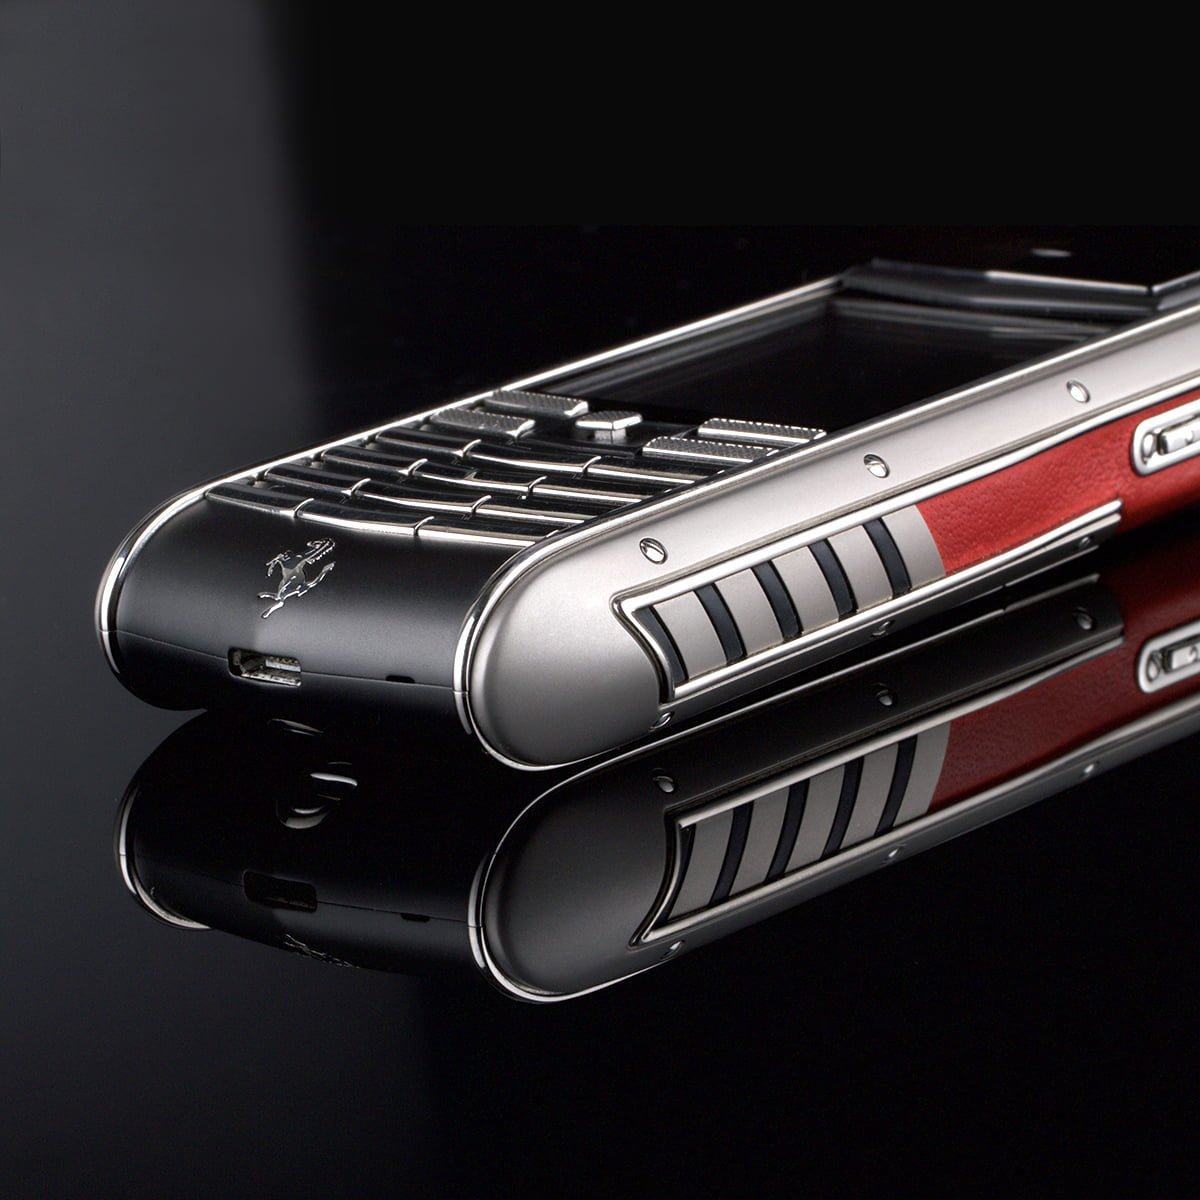 Photo of Vertu Ferrari Rosso Mobile Phone